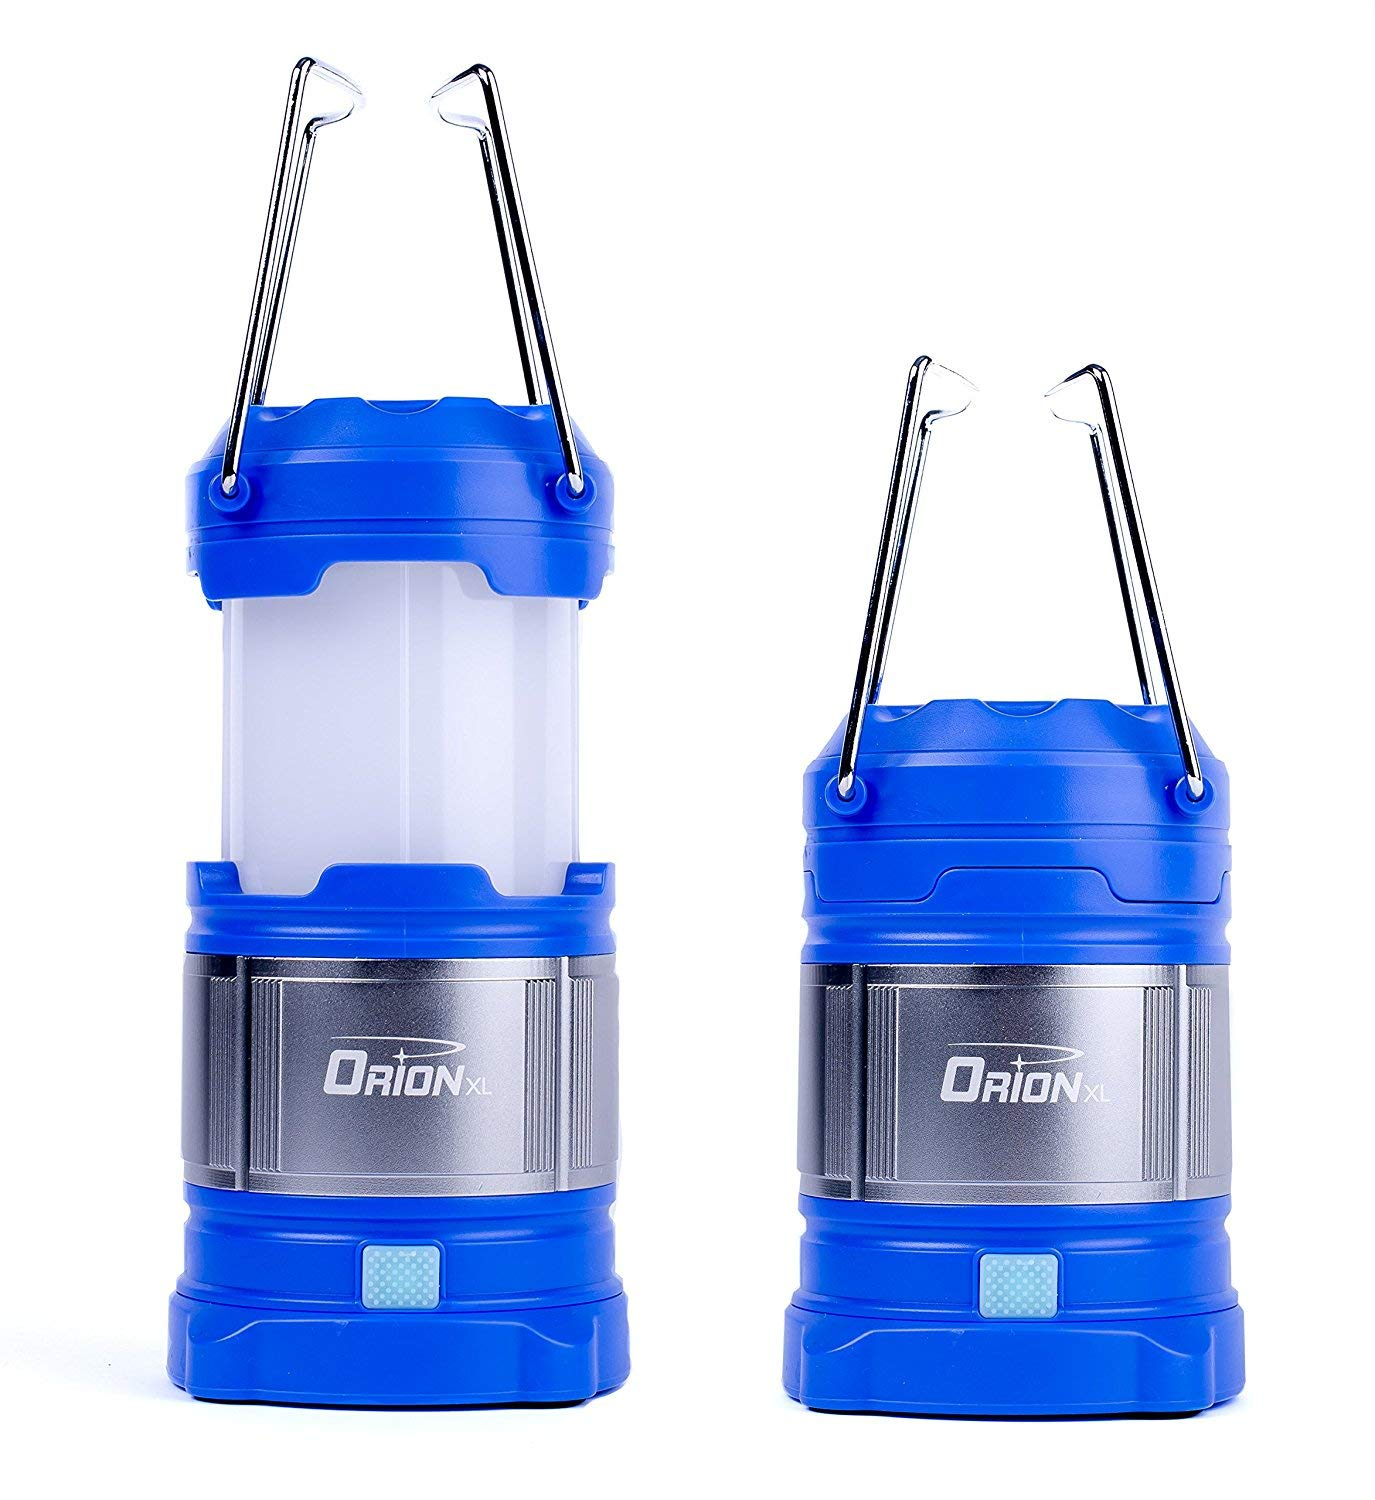 Supernova Orion Ultimate Survival Rechargeable LED Camping Lantern and Power Bank Most Versatile Recreation and Hiking Lantern Available Brightest Lantern for Emergency